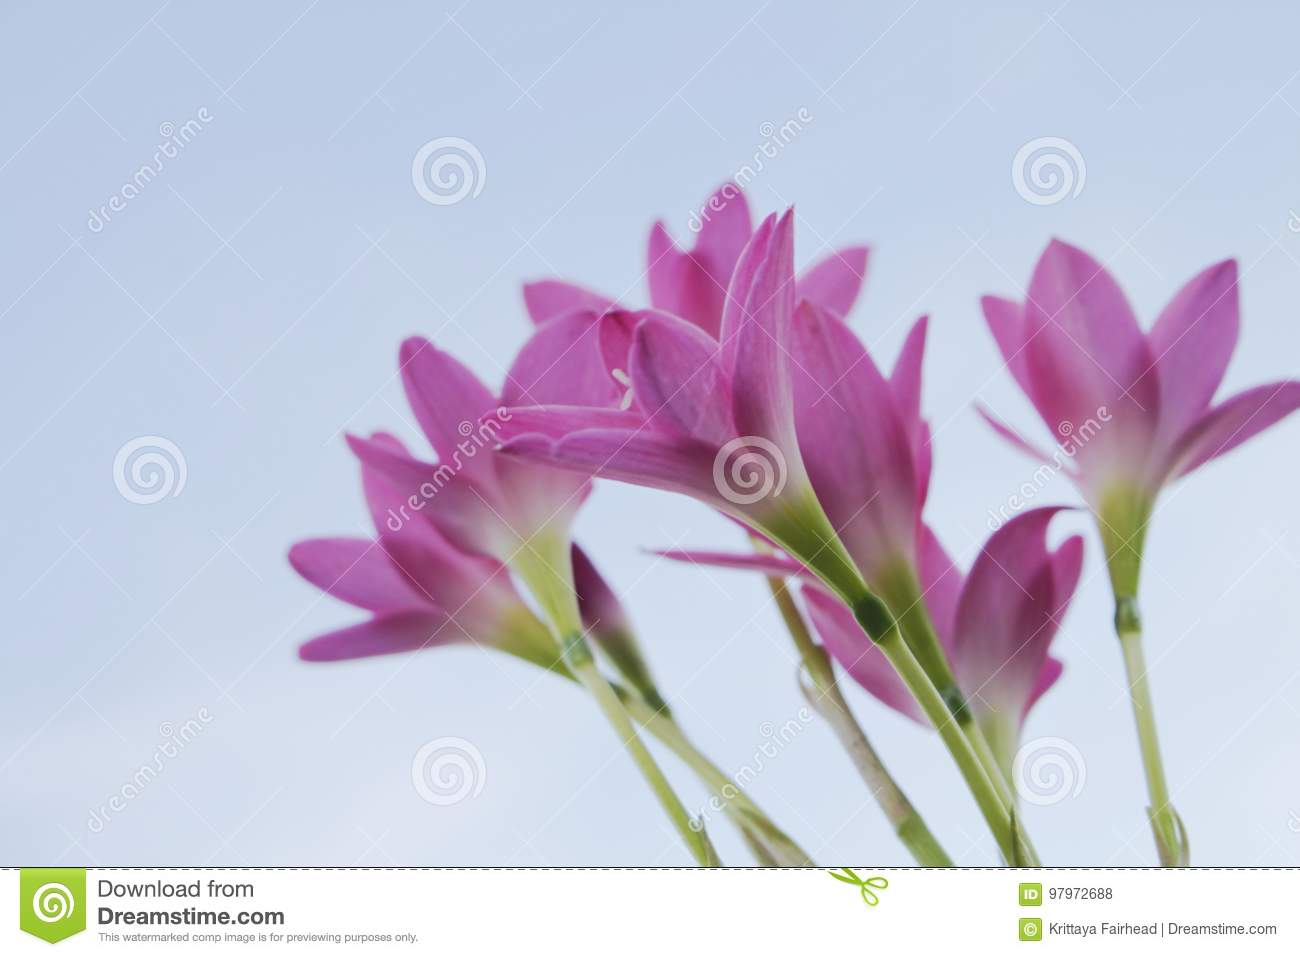 Beautiful pink flowers in the garden rain lily stock photo image beautiful pink flowers in the garden rain lily flower blooming in rainy season with soft light of sunset izmirmasajfo